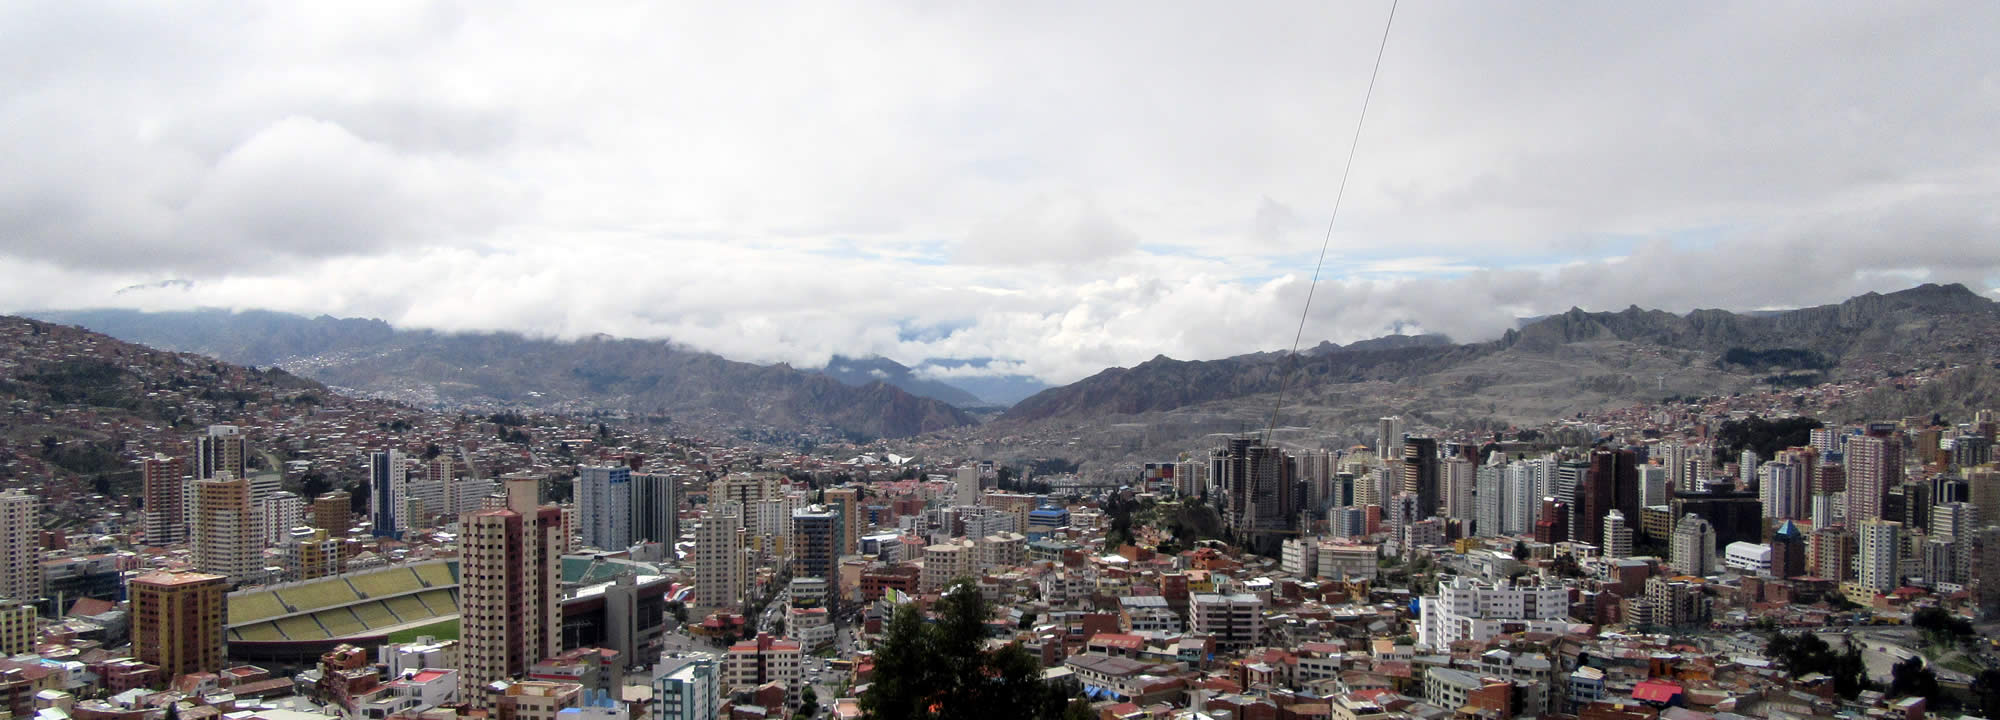 La Paz, city of wonder high in the Andes